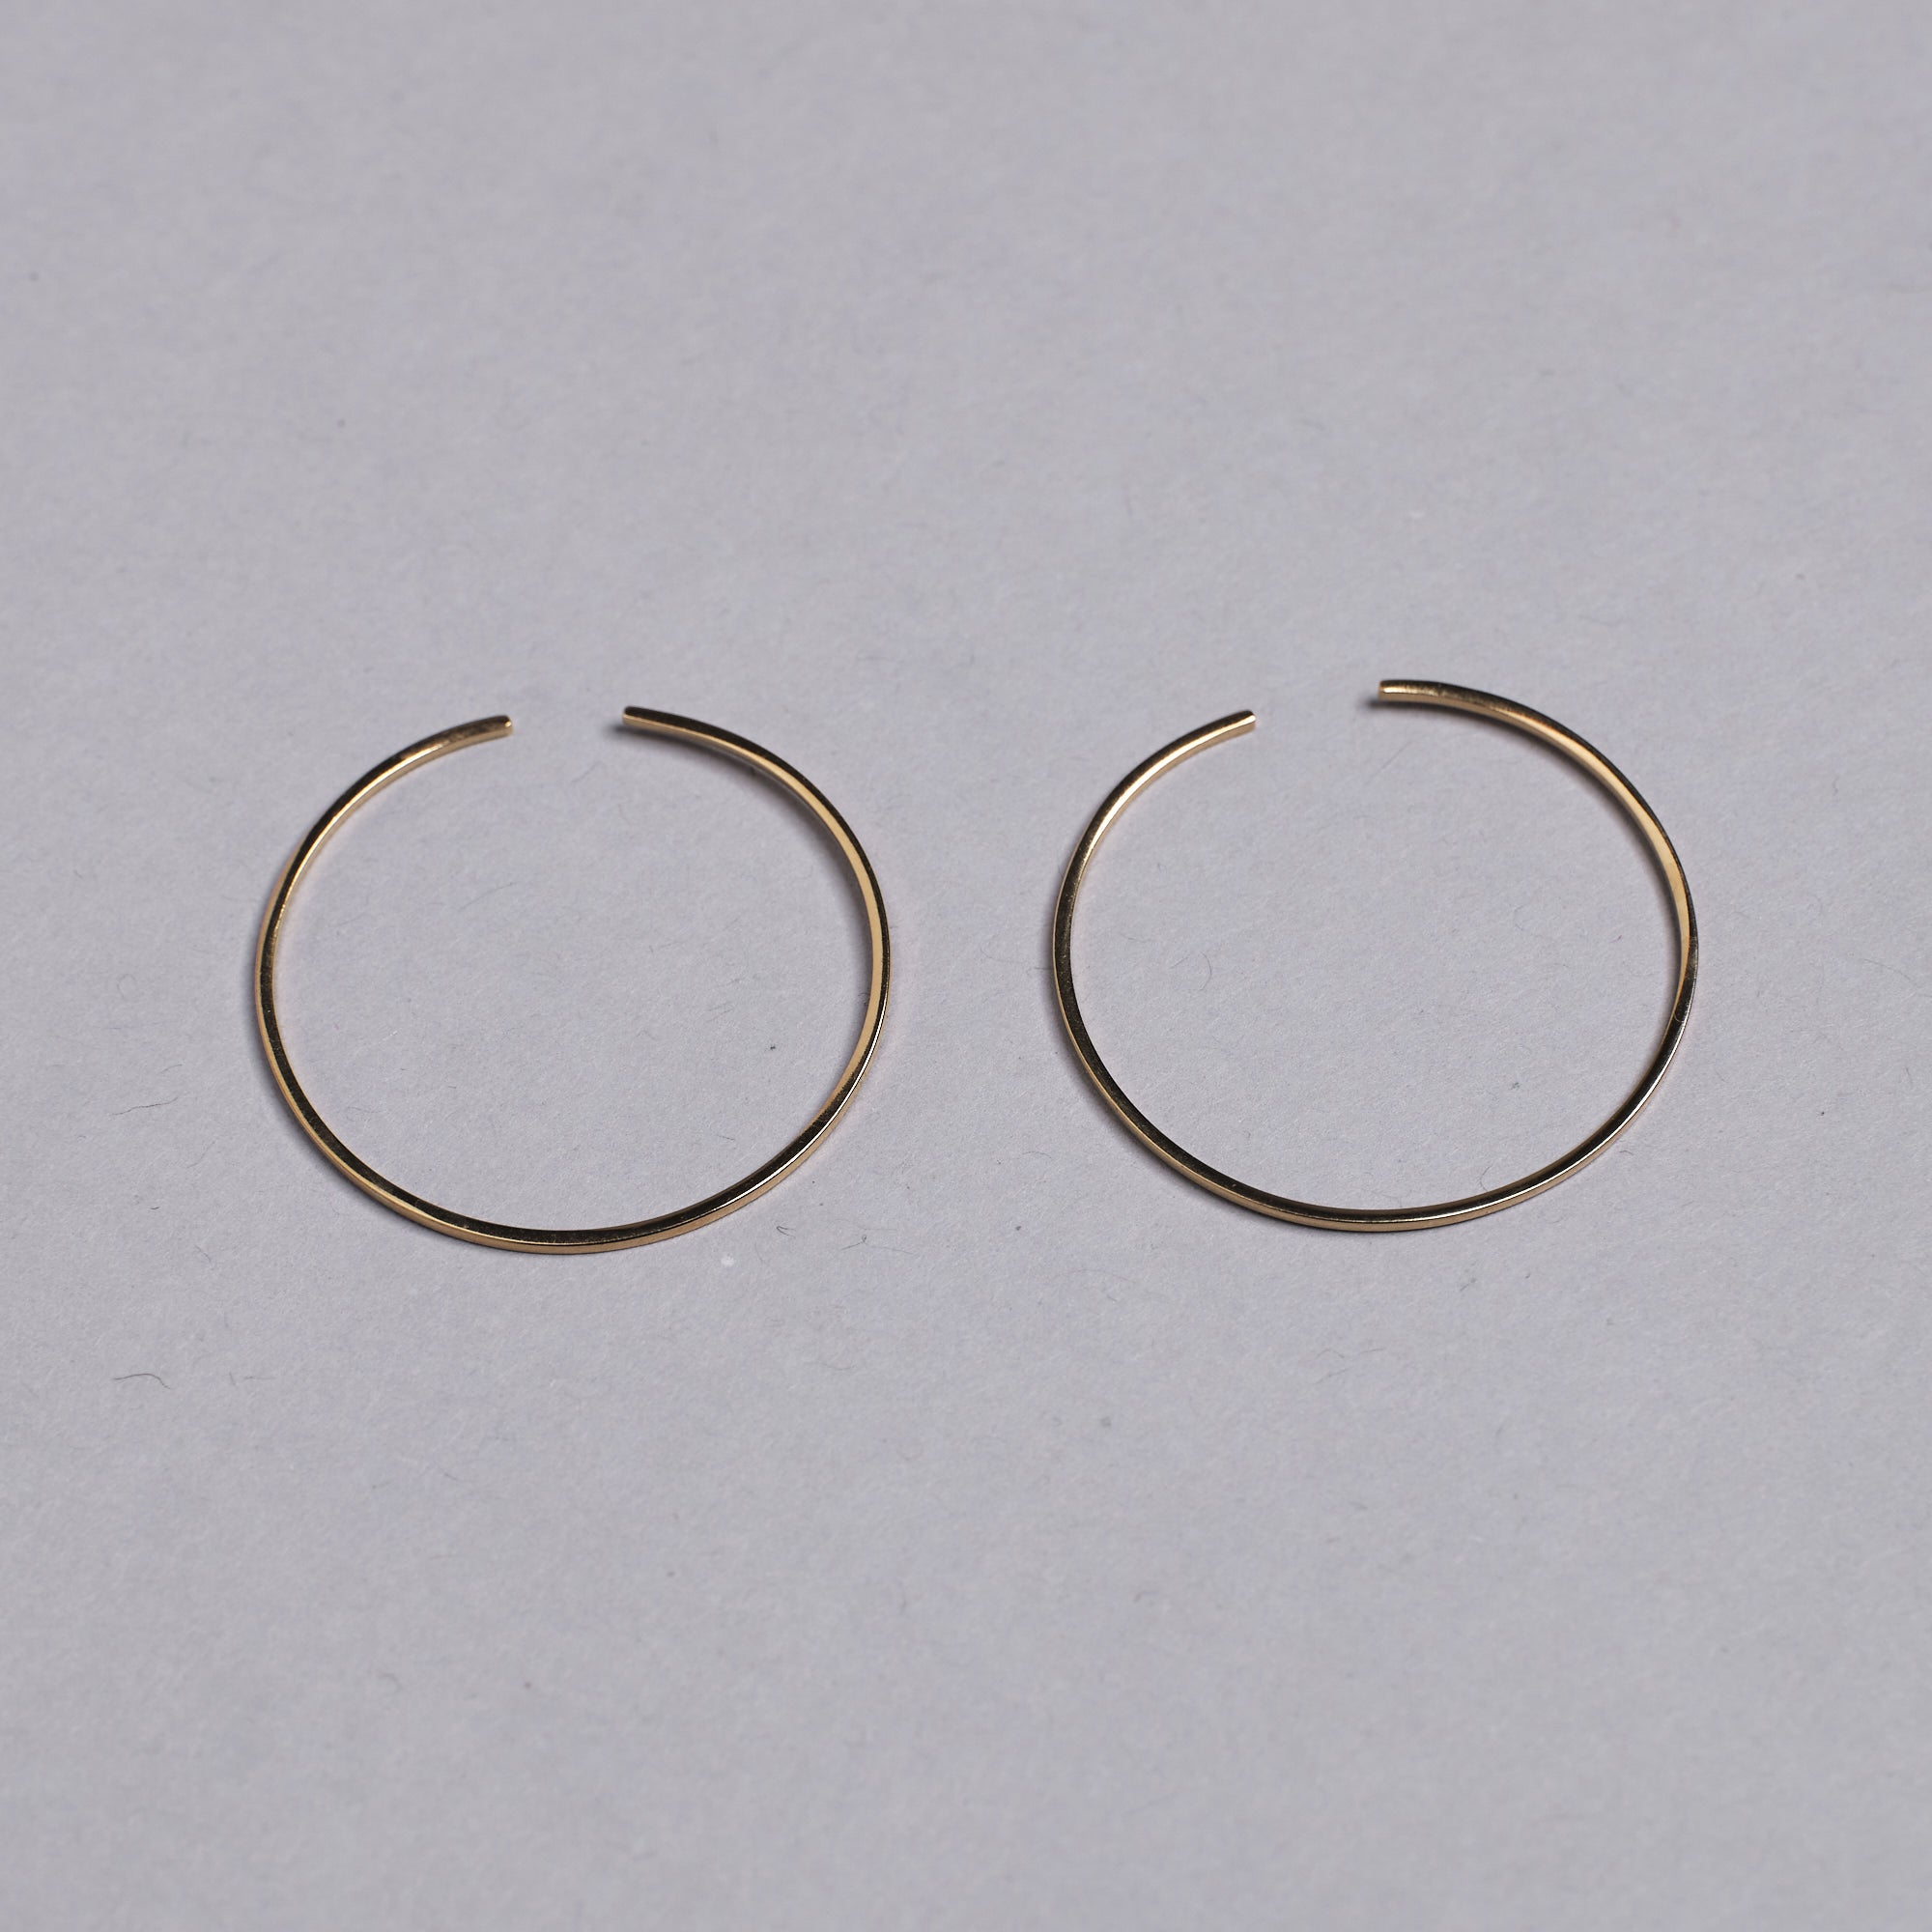 Gold Round Ear Cuffs by Otis Jaxon